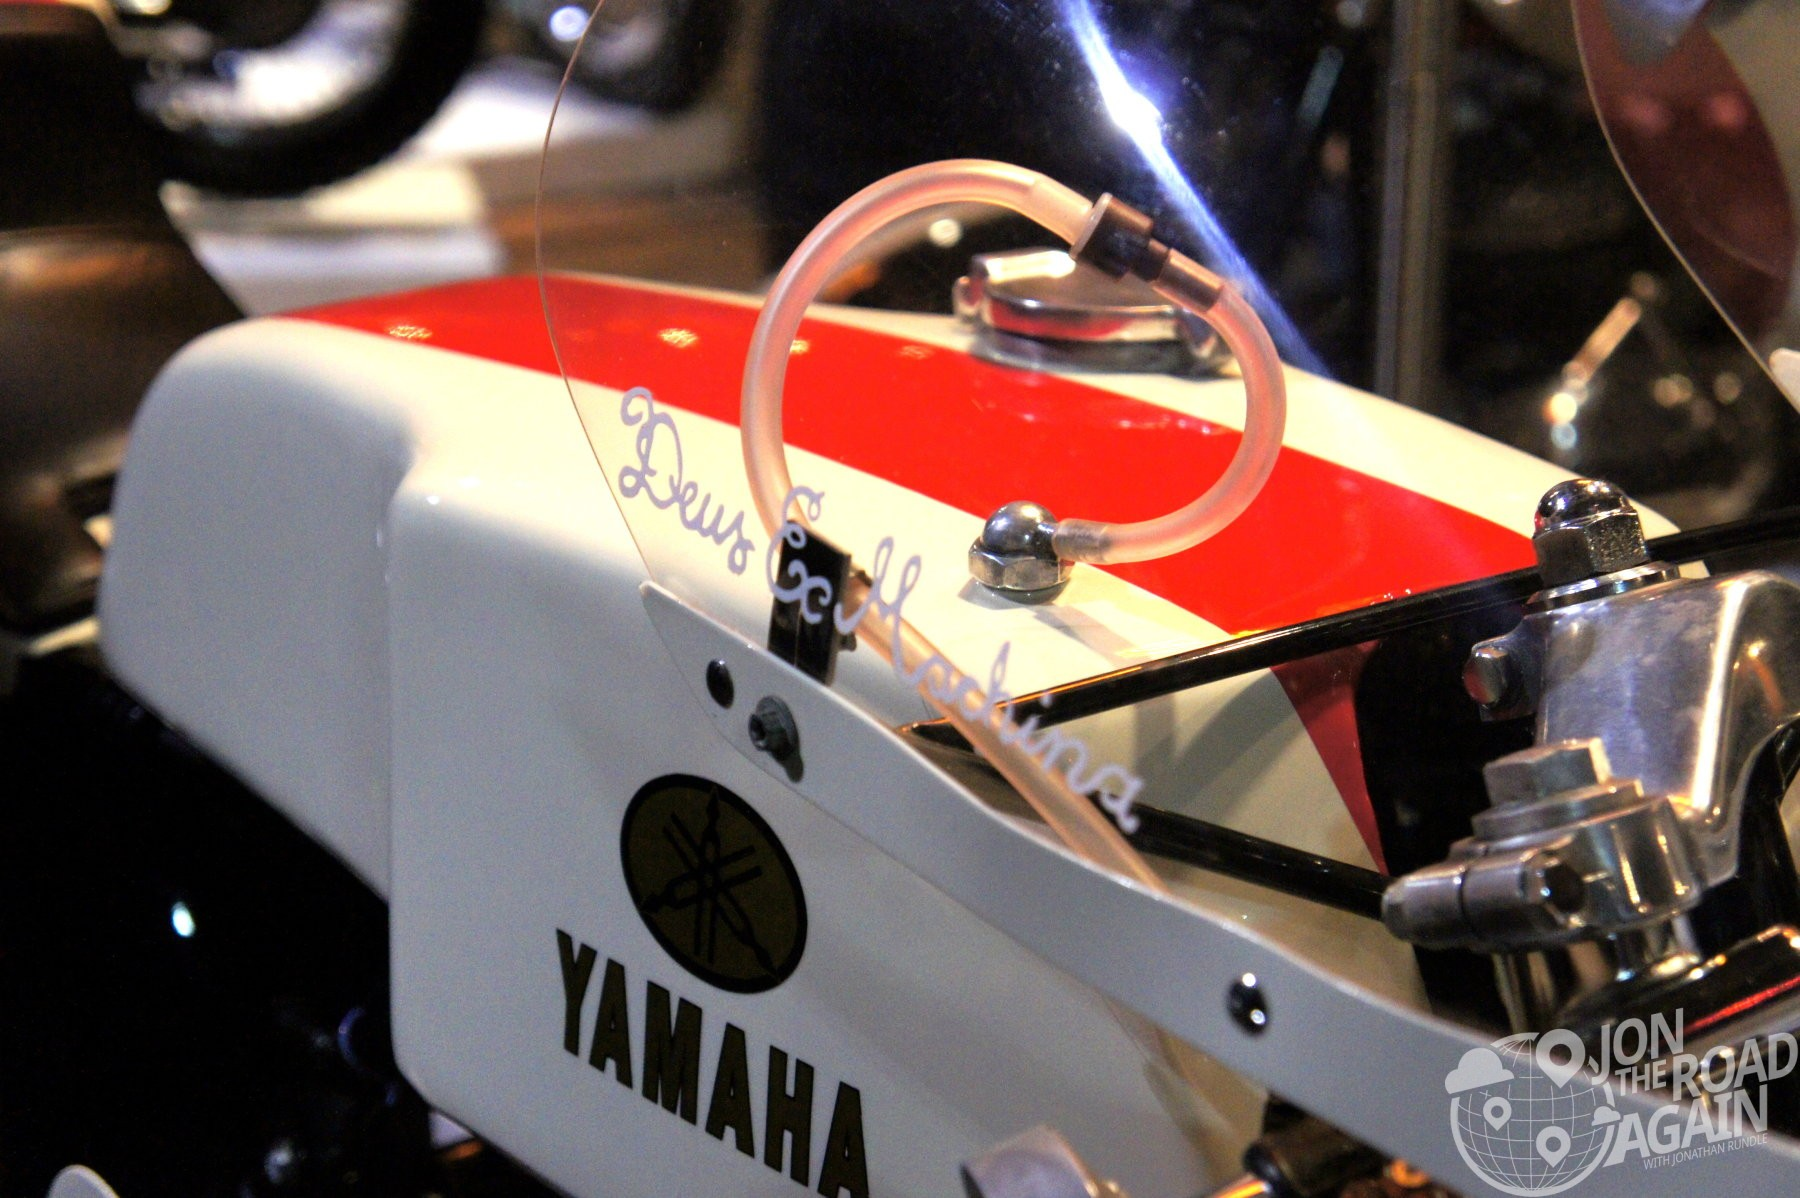 Yamaha racer built by Deus